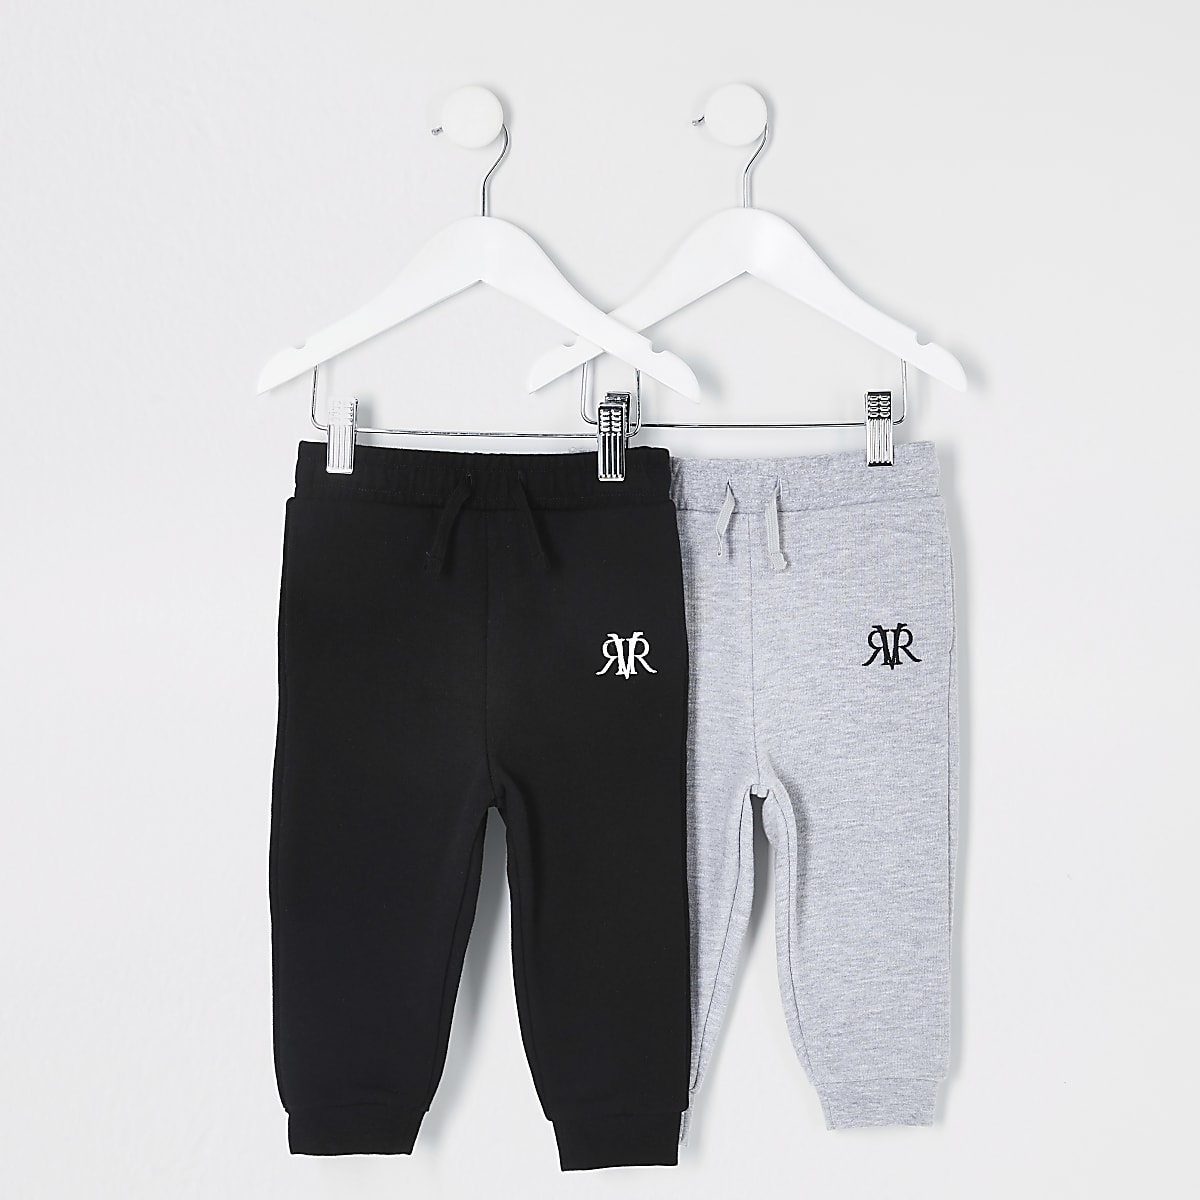 Mini boys black RVR joggers 2 pack